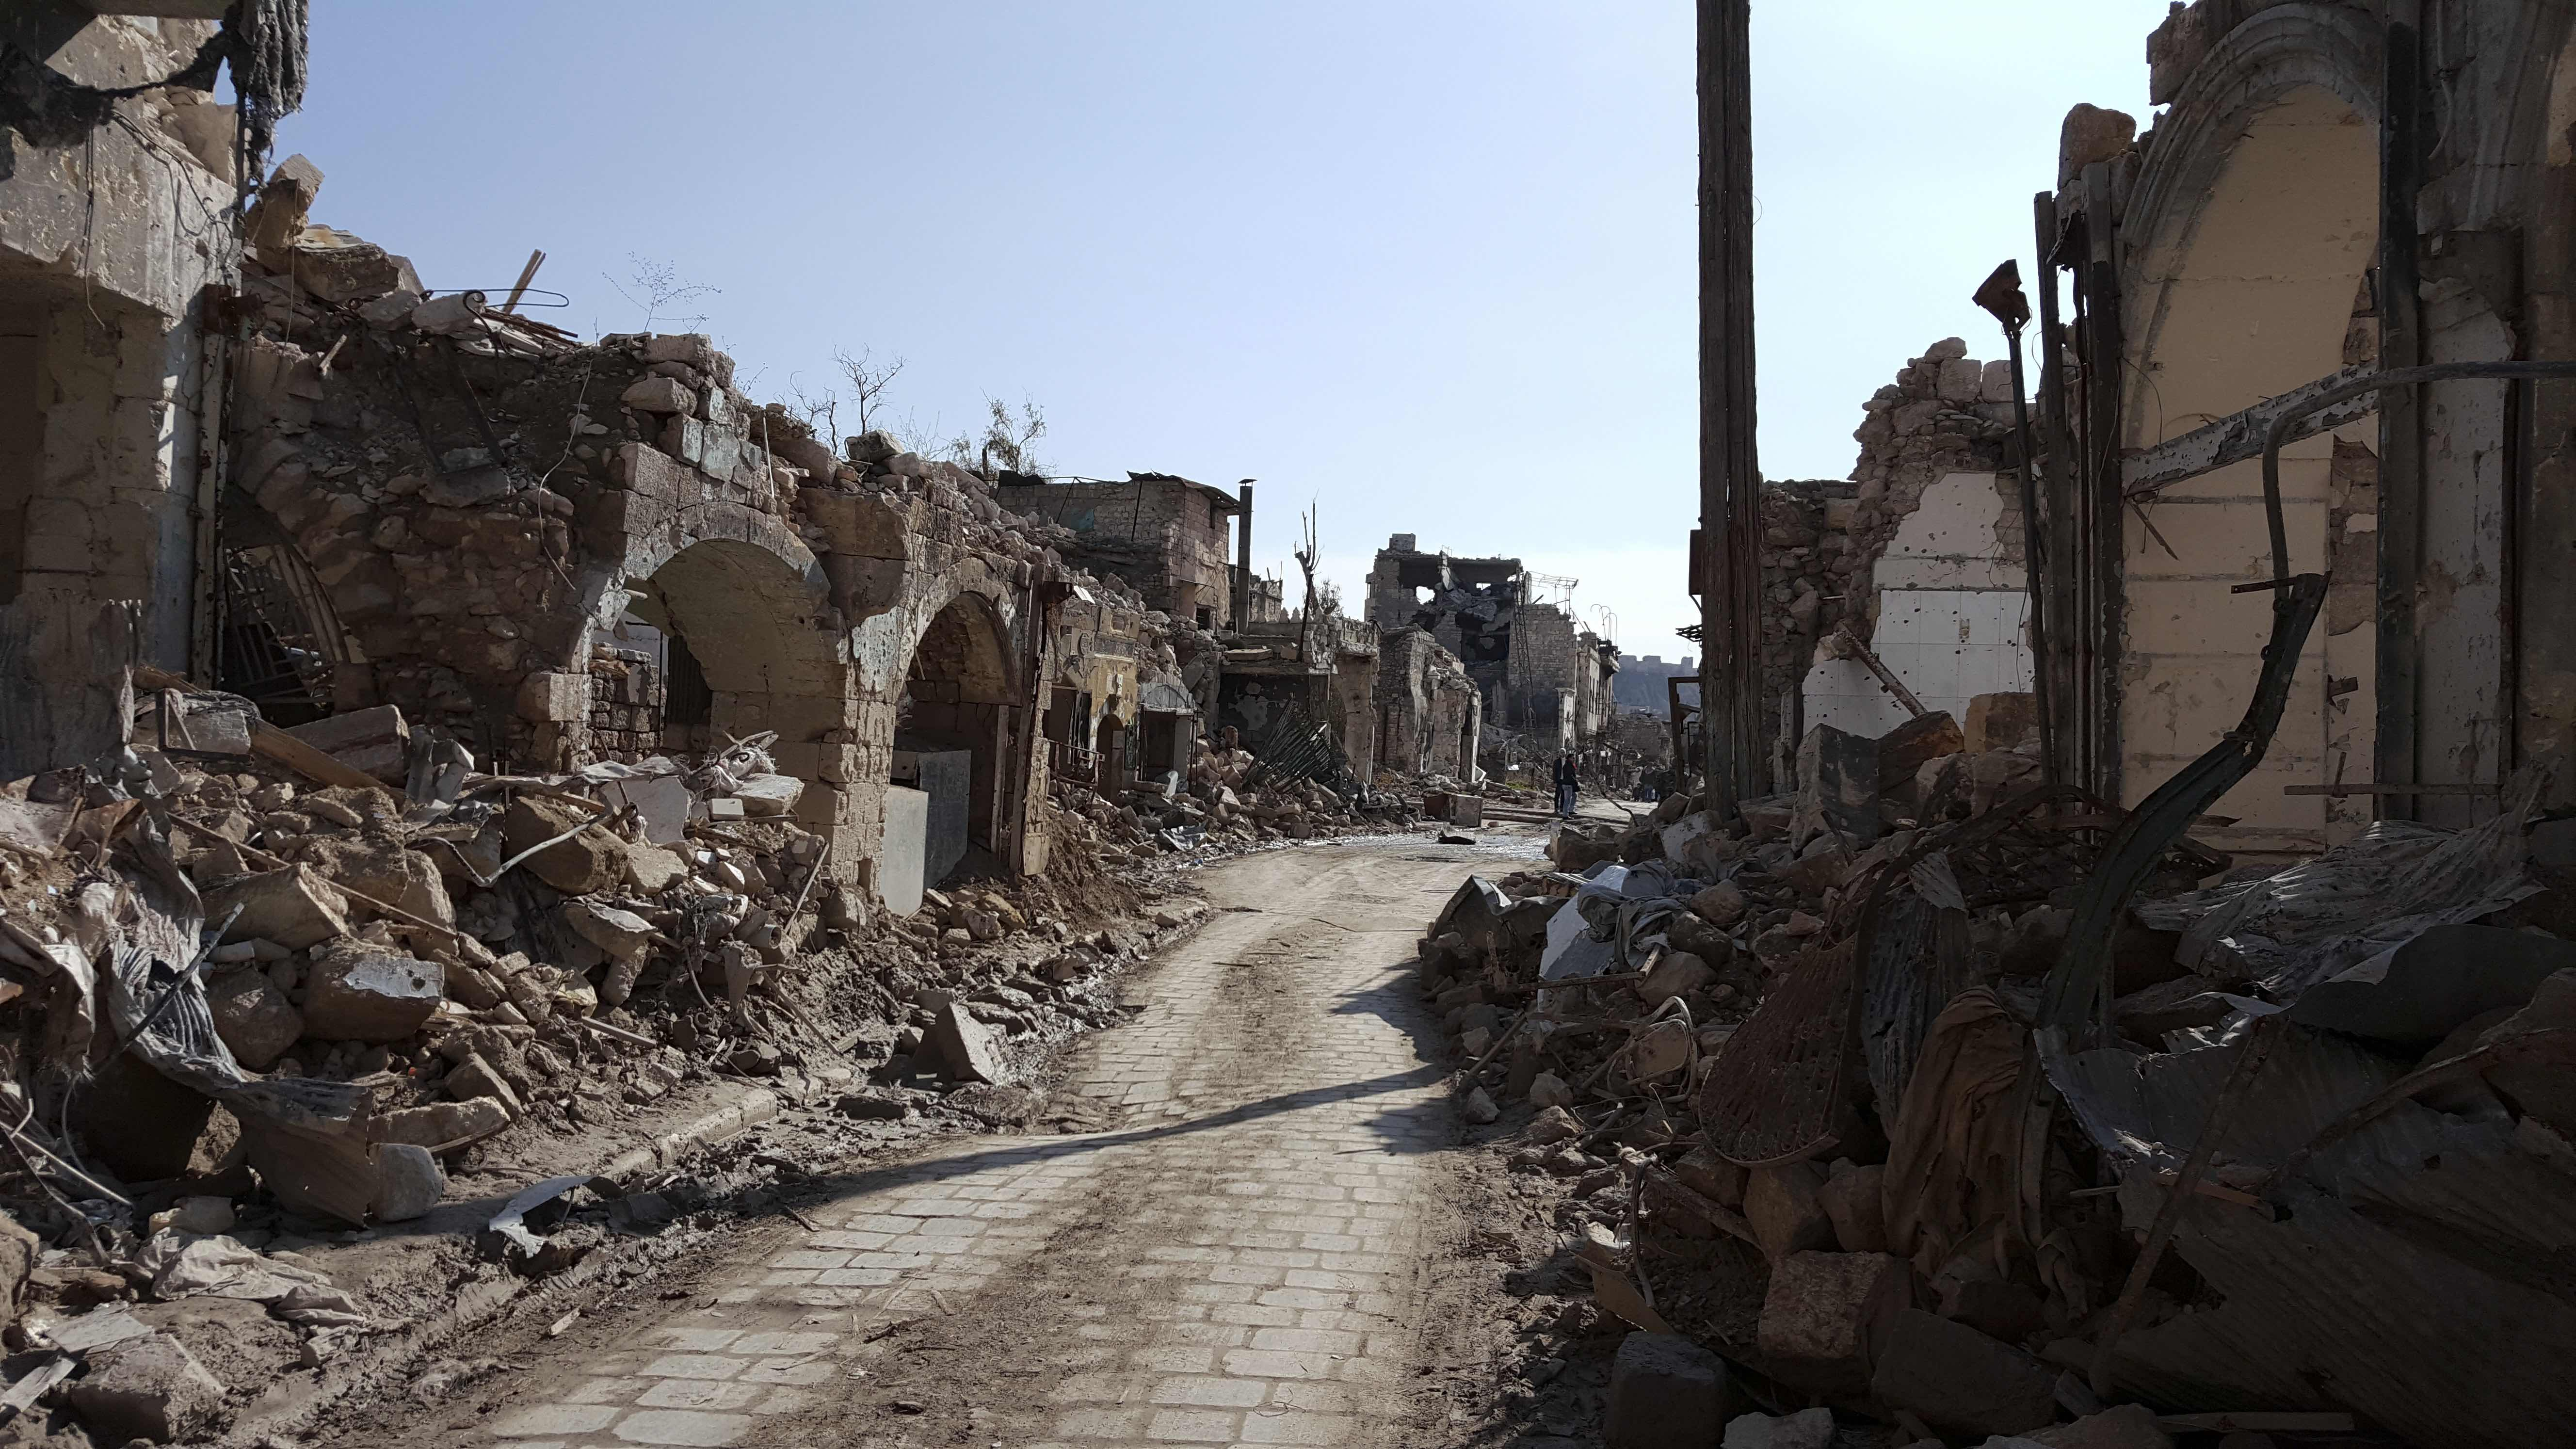 Aleppo: how it was and what became